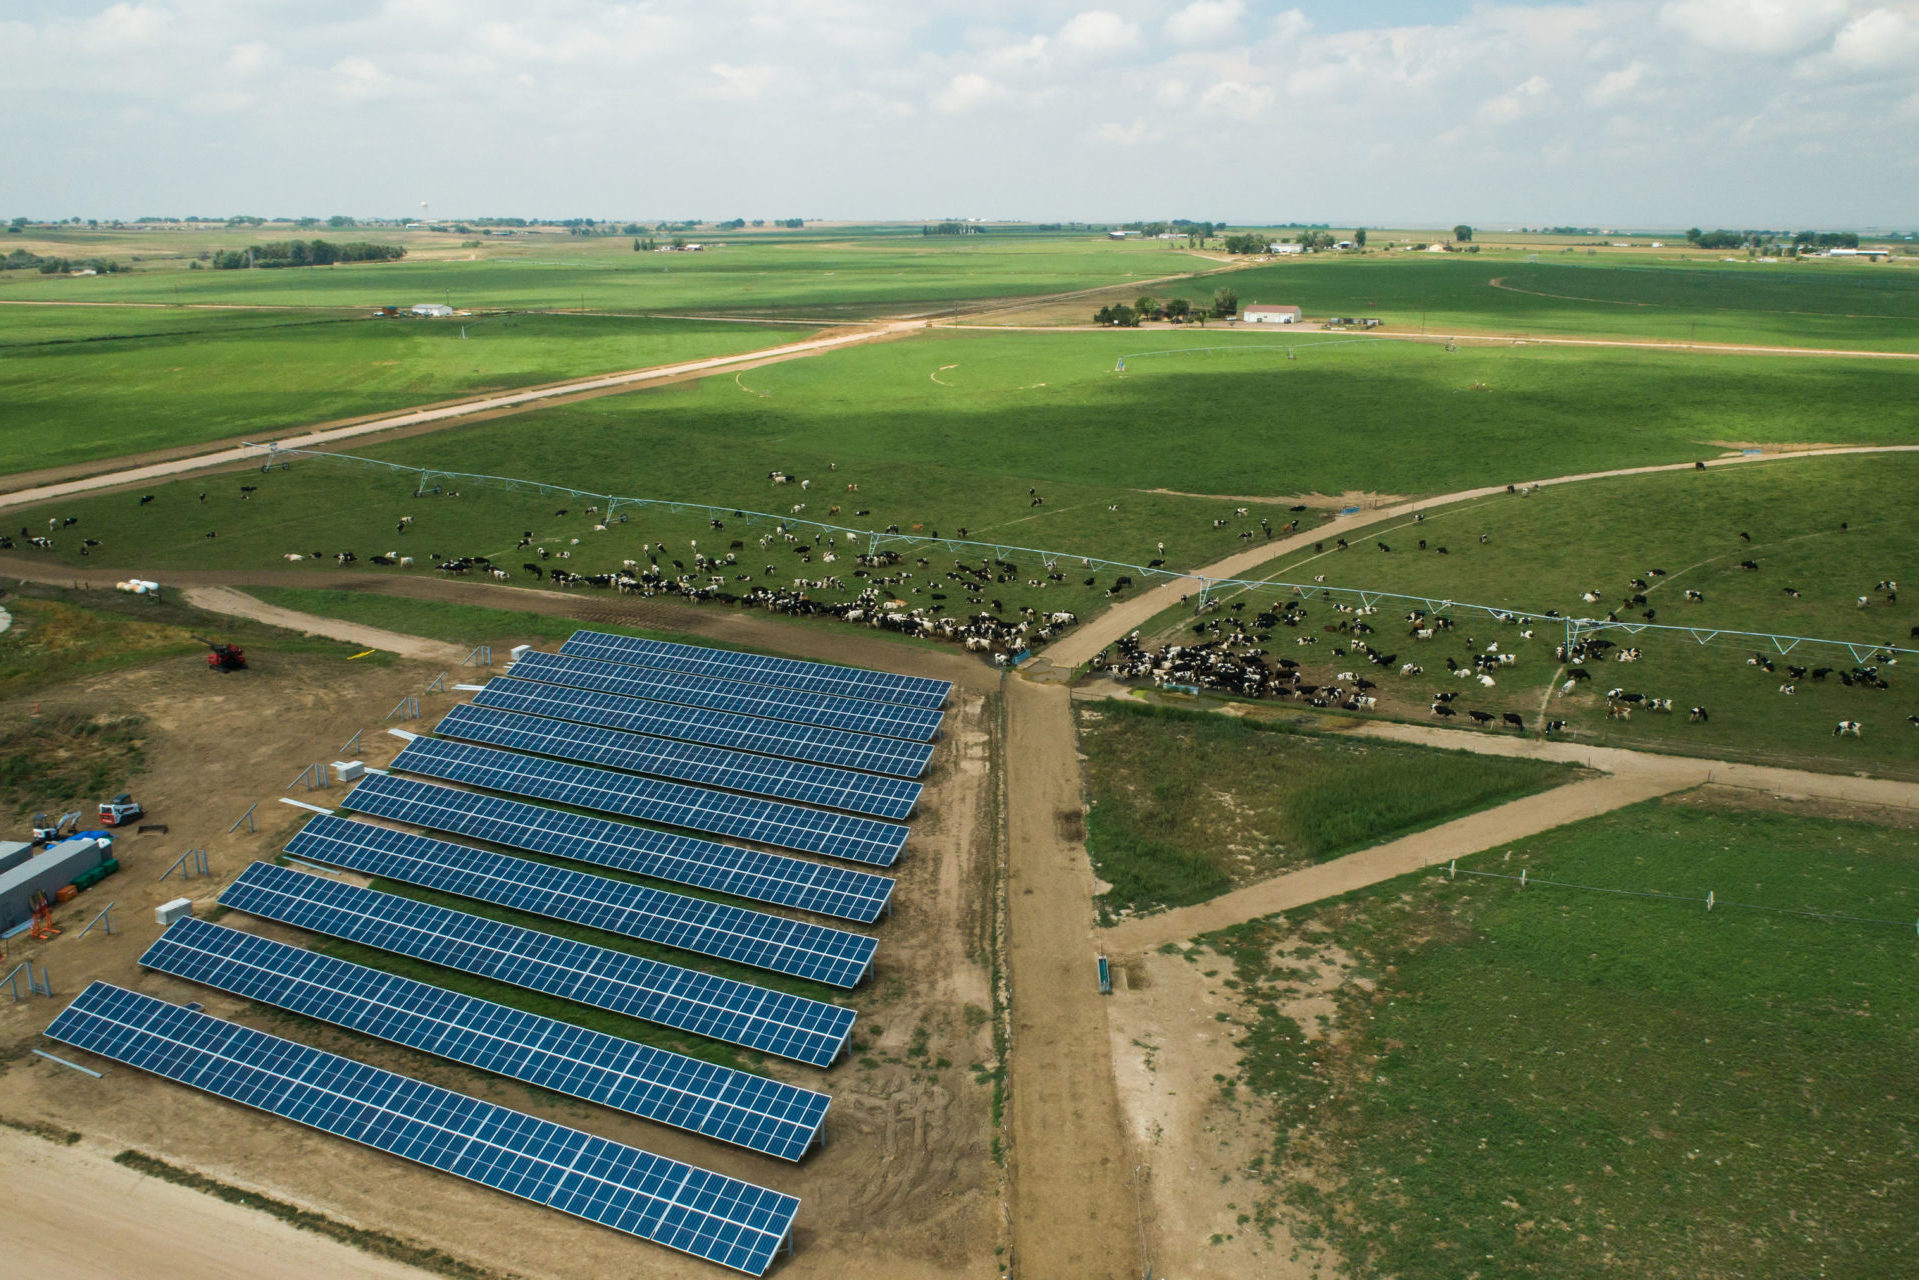 ground-mounted commercial solar array with cows in background at dairy farm